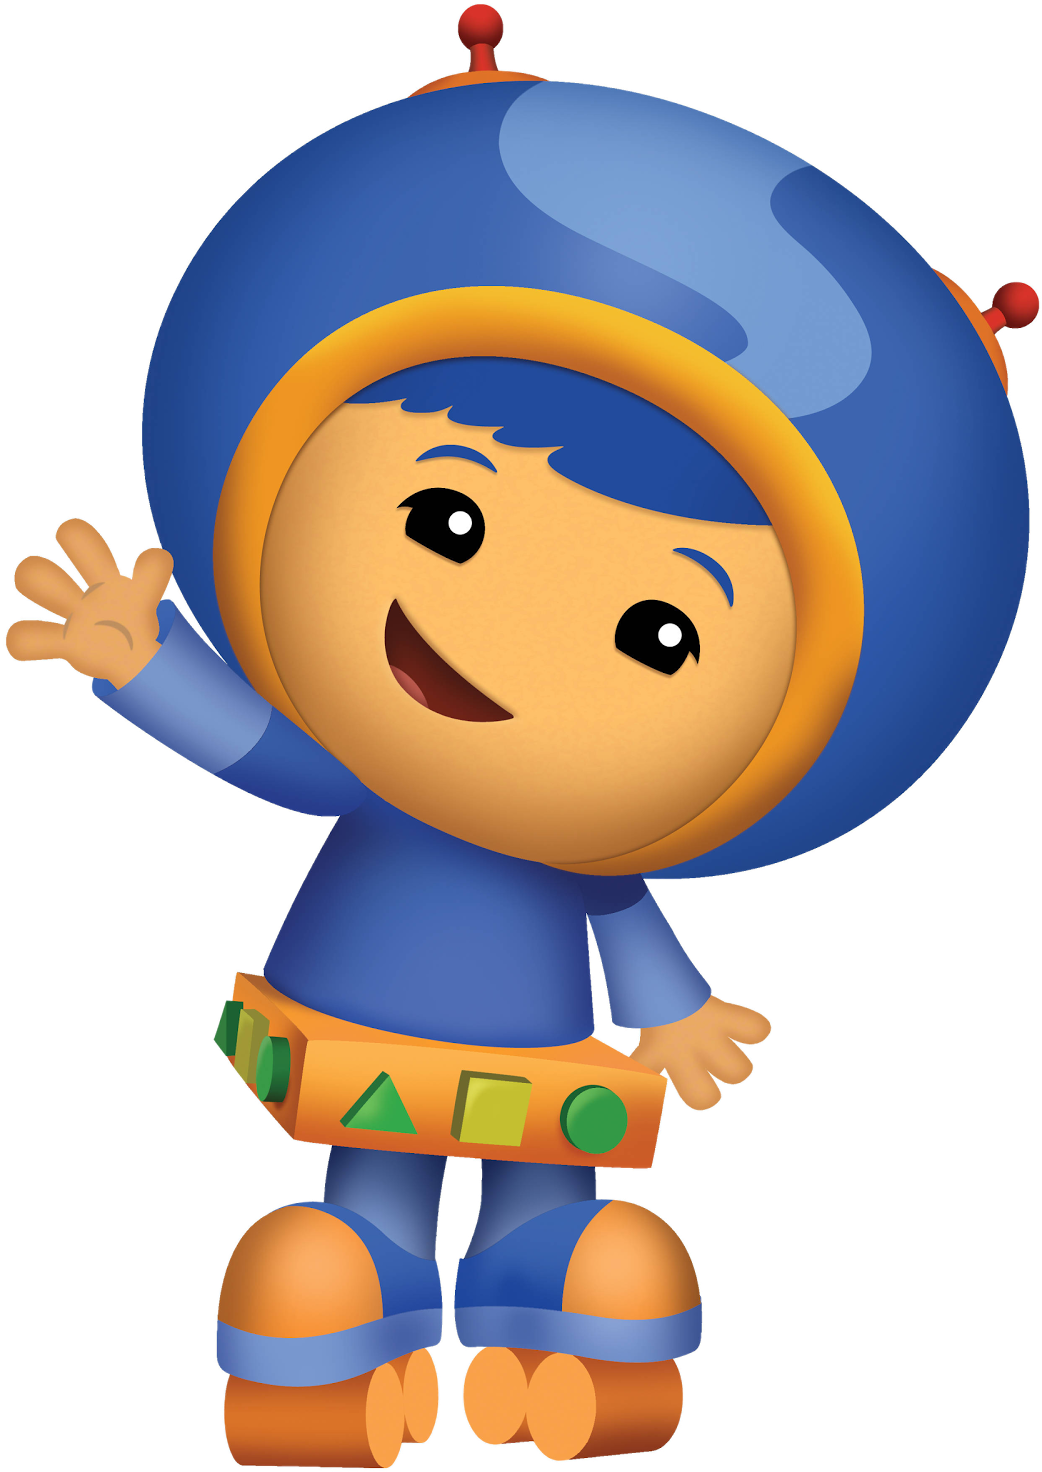 Team Umizoomi Roblox Bubble Guppies Png Team Umizoomi Geo From Team Umizoomi 536908 Vippng